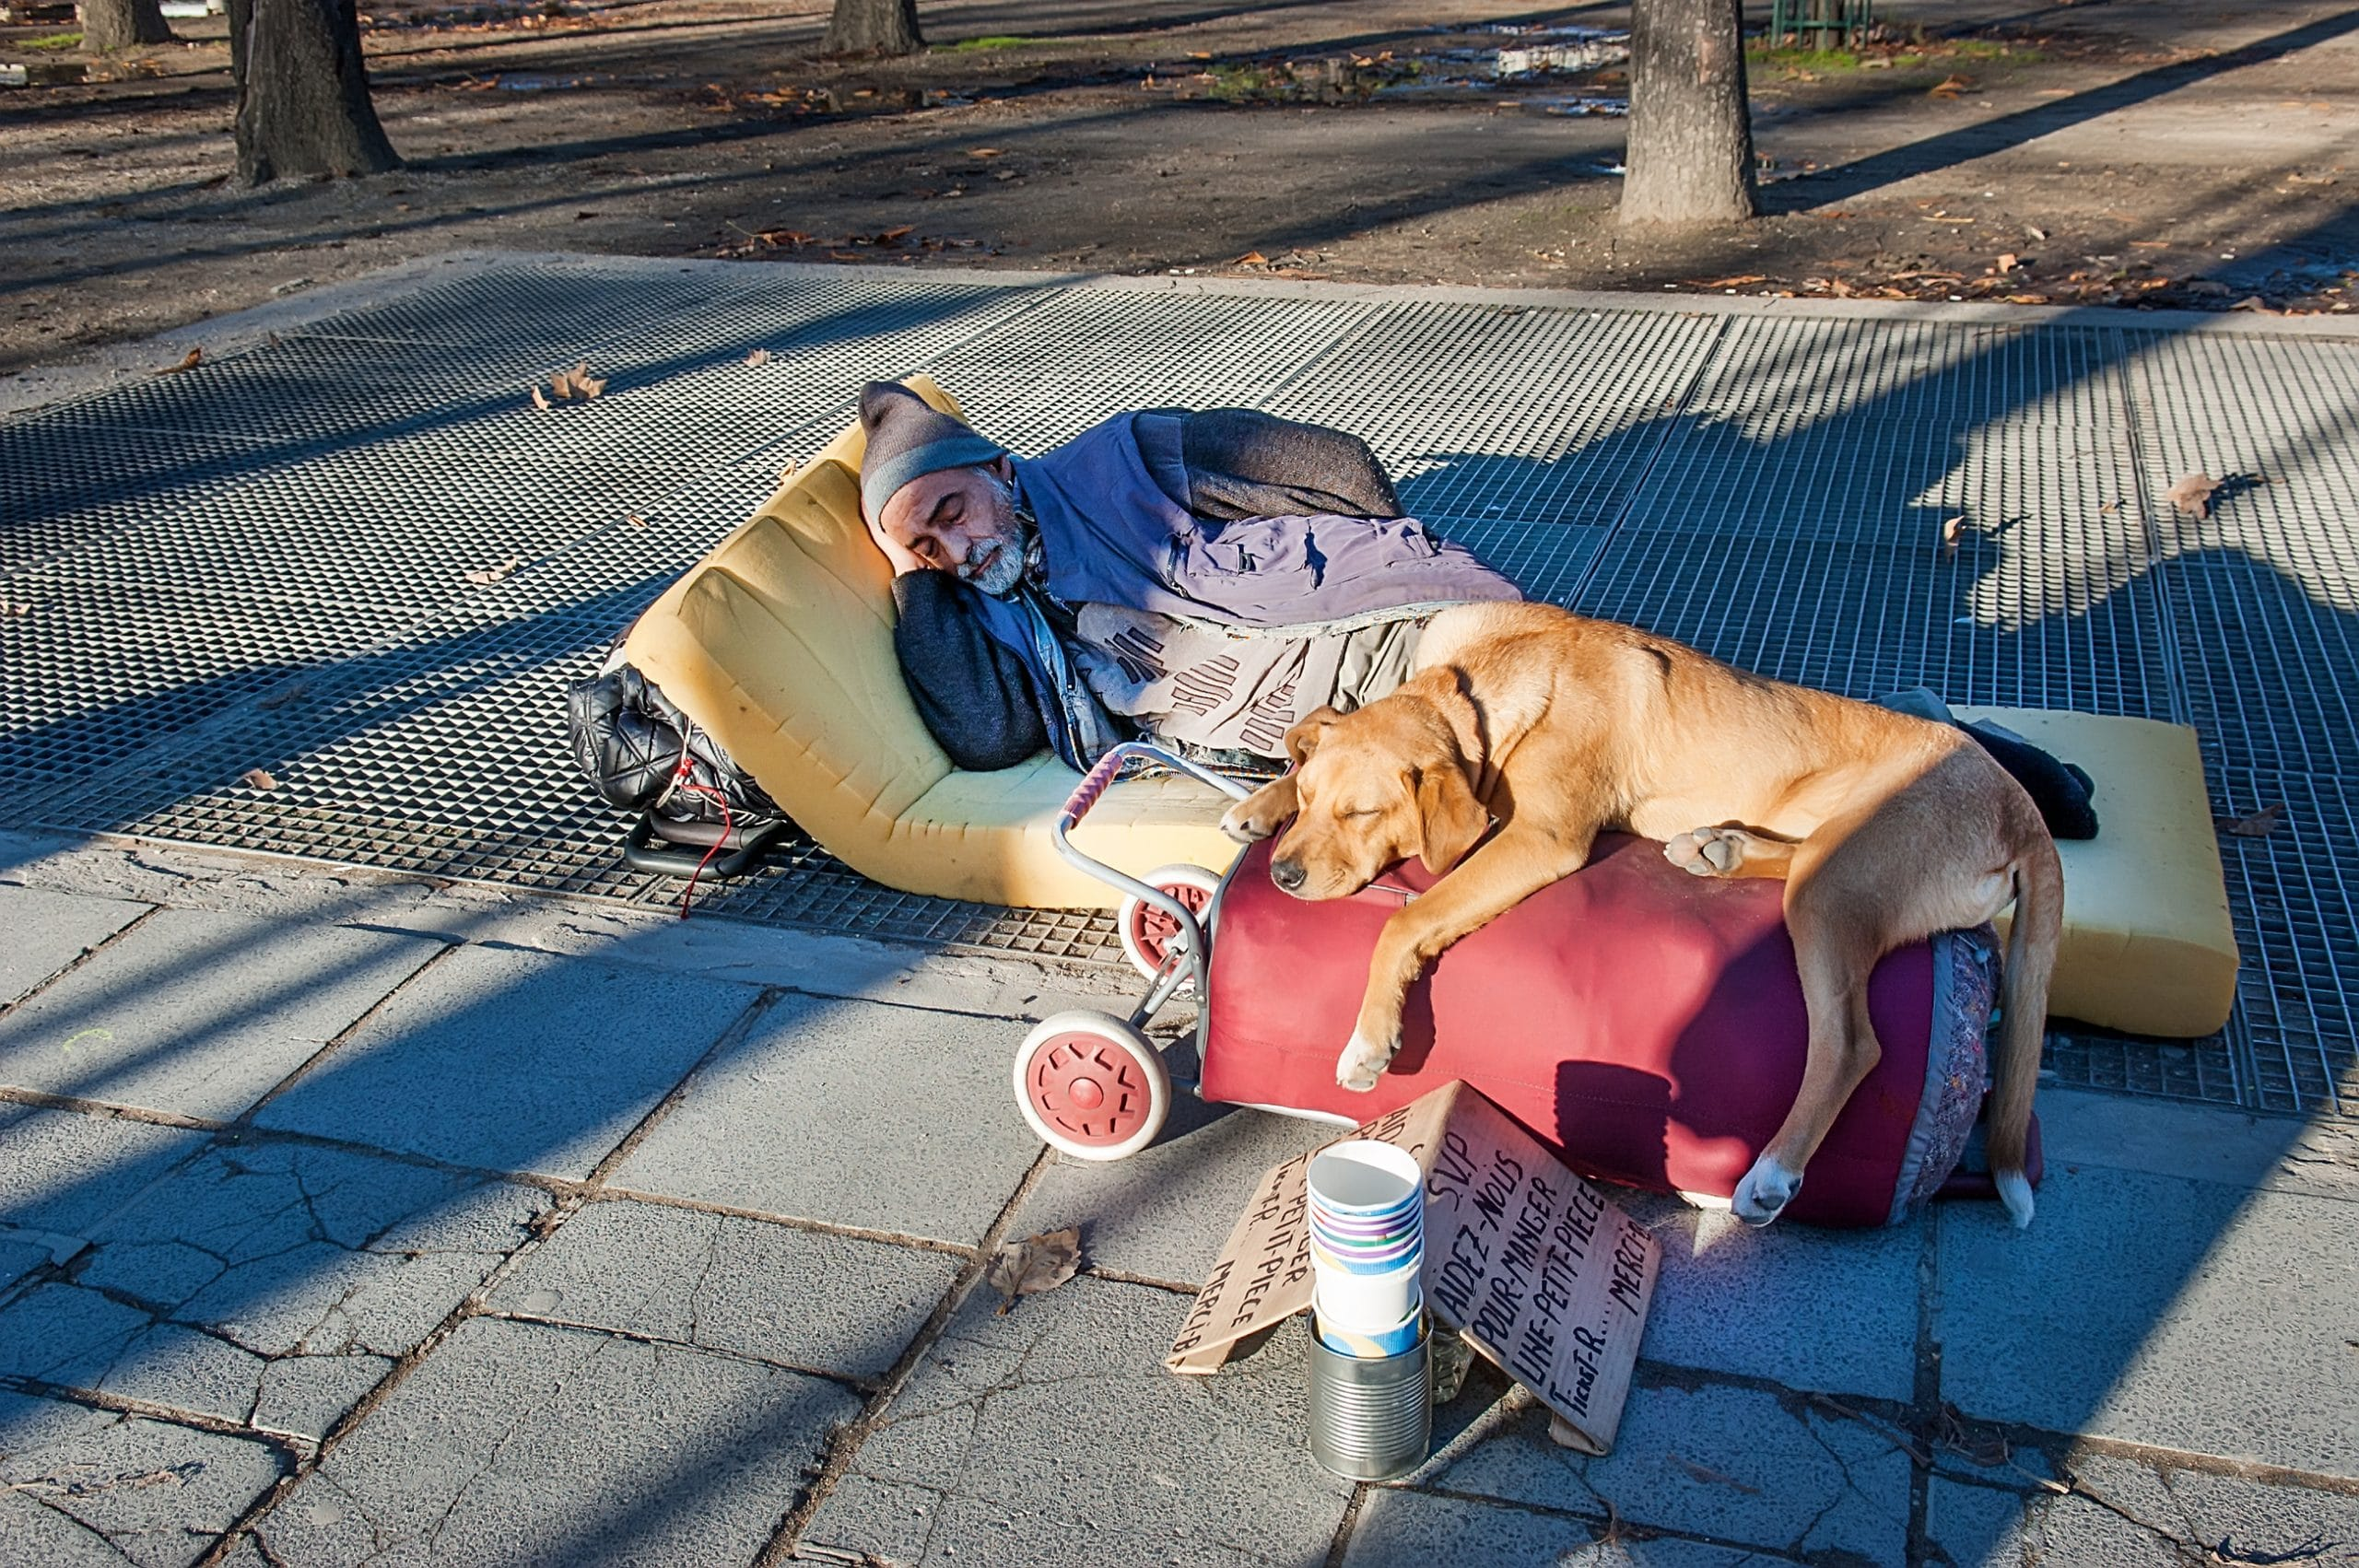 Homeless man sleeping on the street with his dog